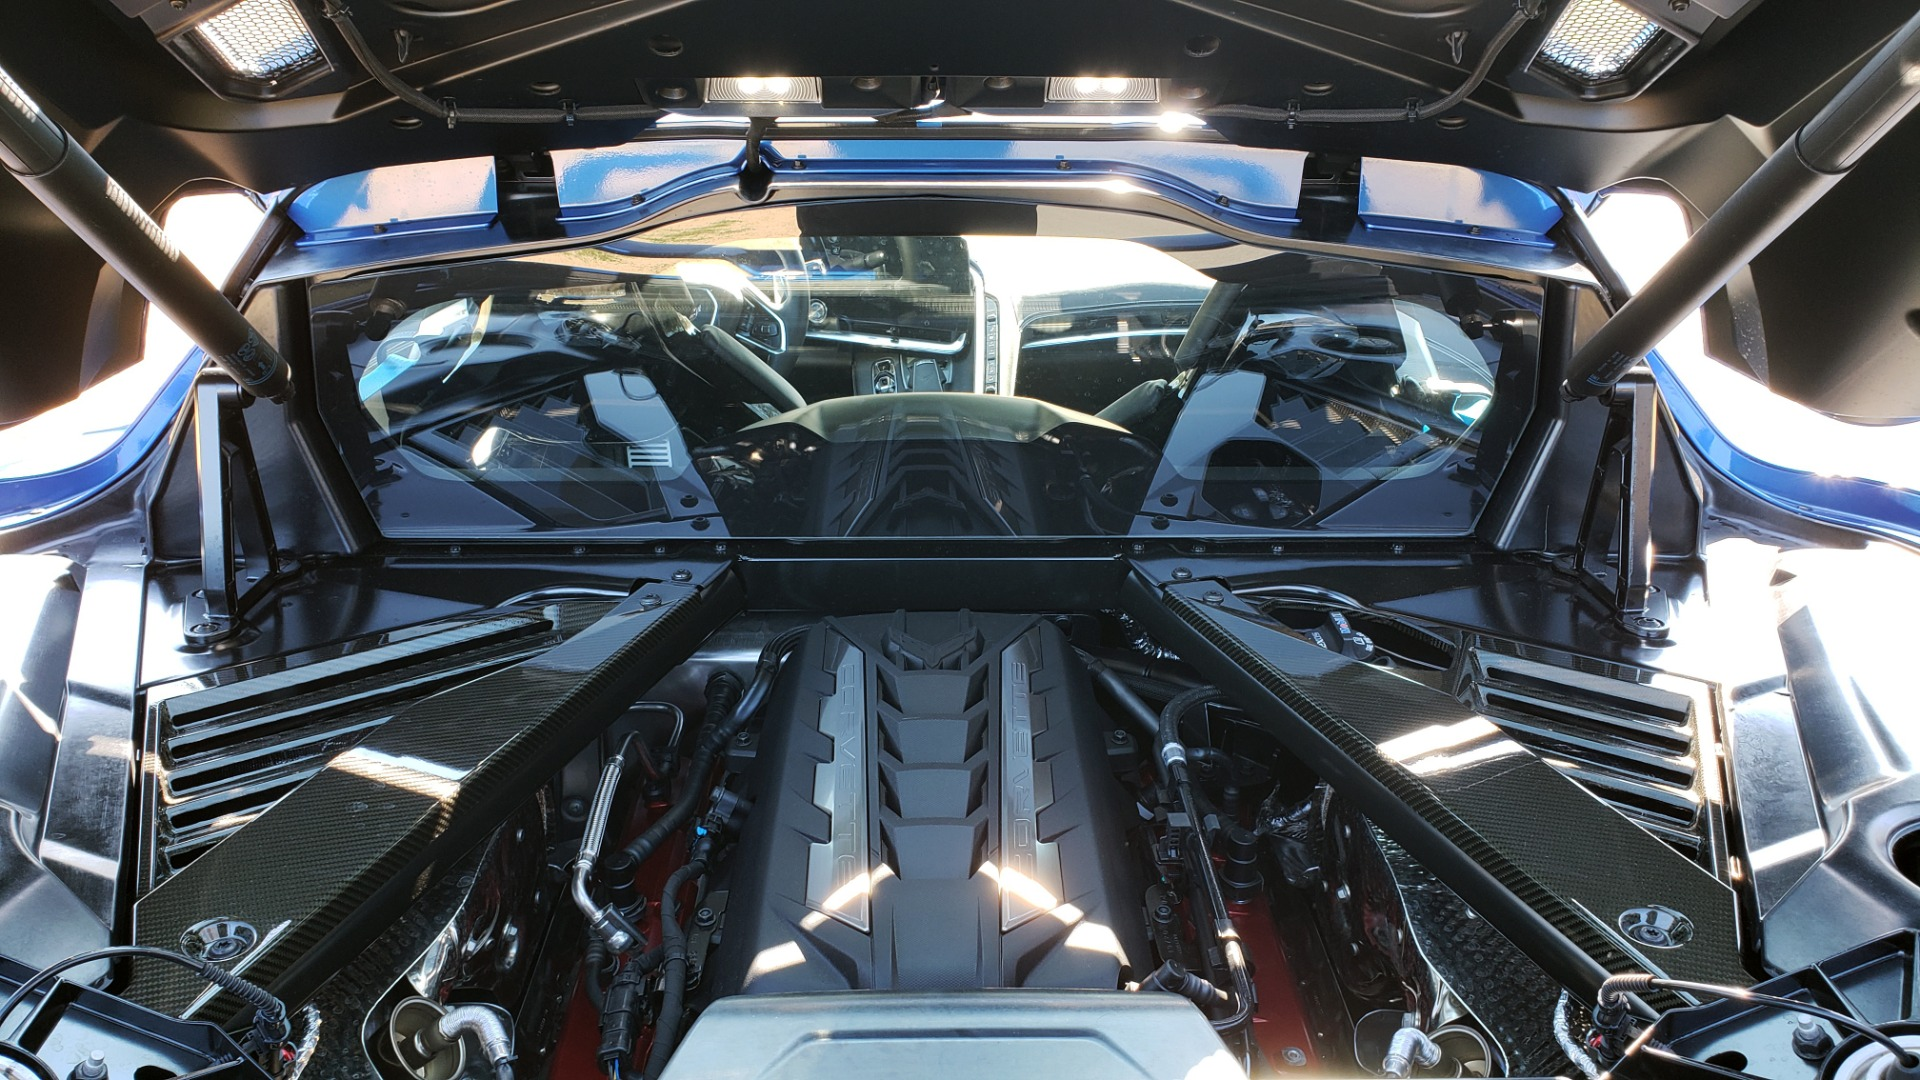 Used 2020 Chevrolet C8 CORVETTE STINGRAY 2LT COUPE / NAV / HUD / BOSE / GT2 SEATS / FRONT LIFT / REARVIEW for sale Sold at Formula Imports in Charlotte NC 28227 43